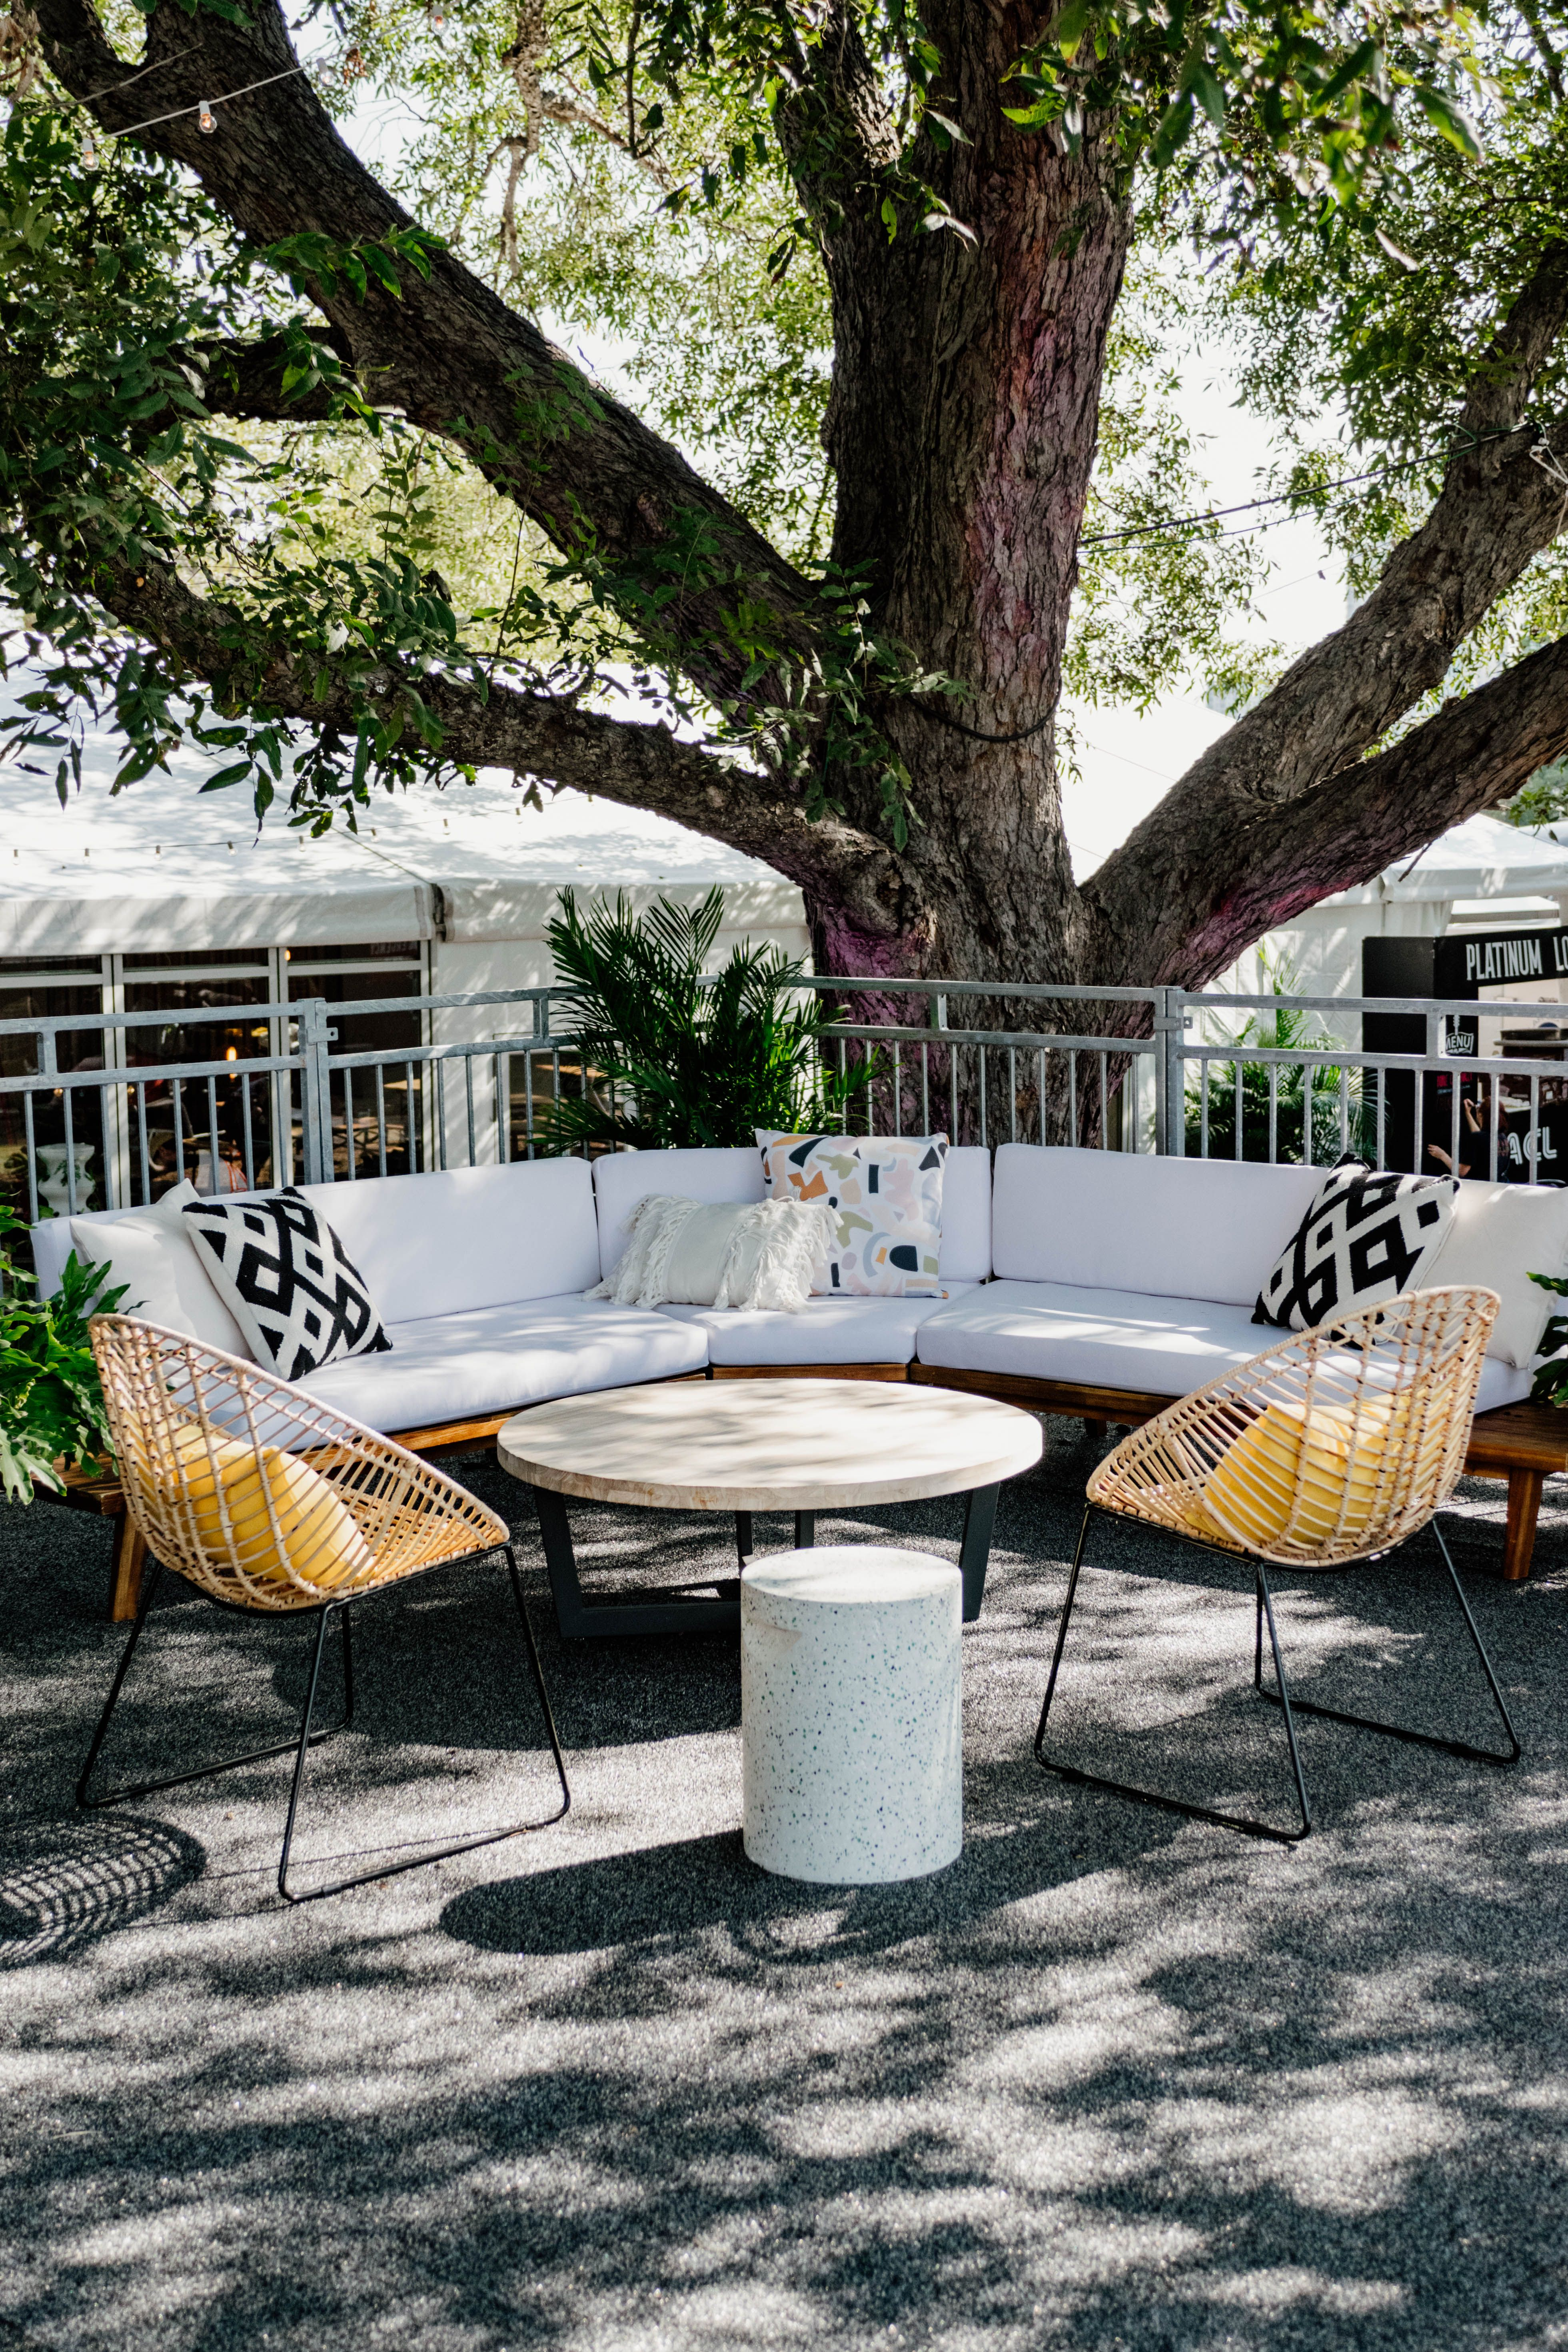 Outdoor Seating Lounge At Austin City Limits Festival 2019